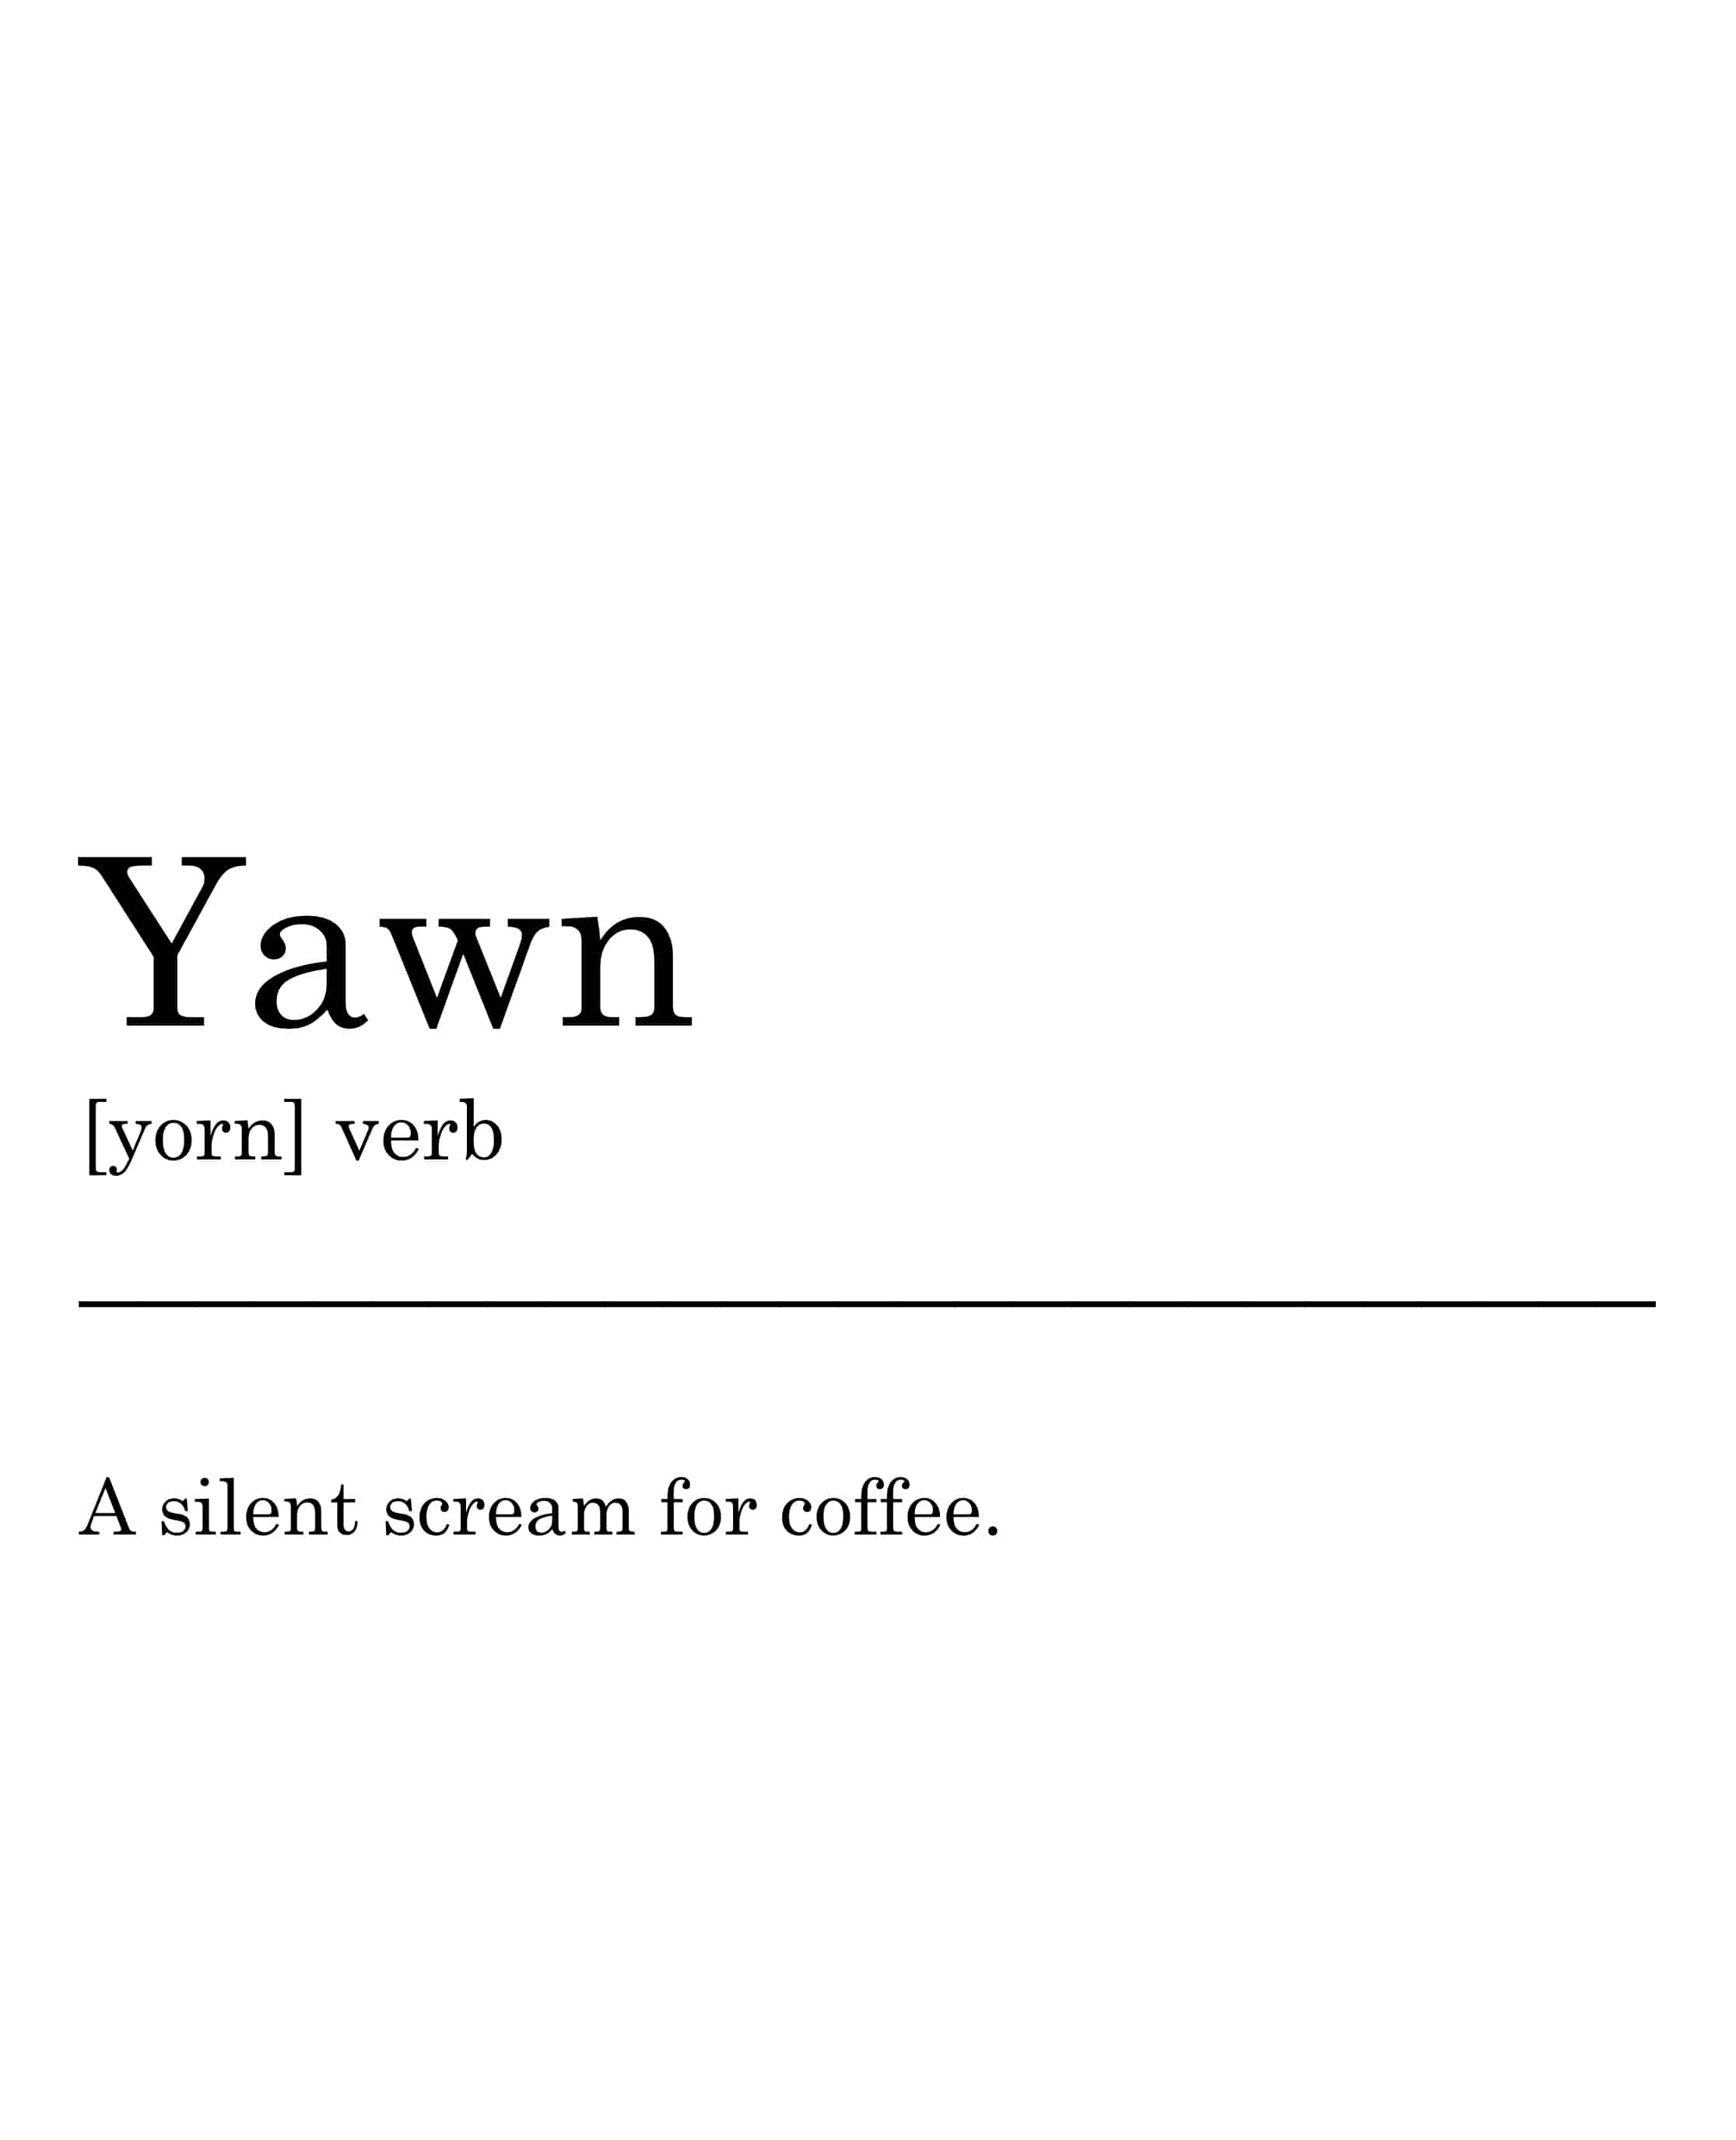 yawn definition printable wall art for you to print at